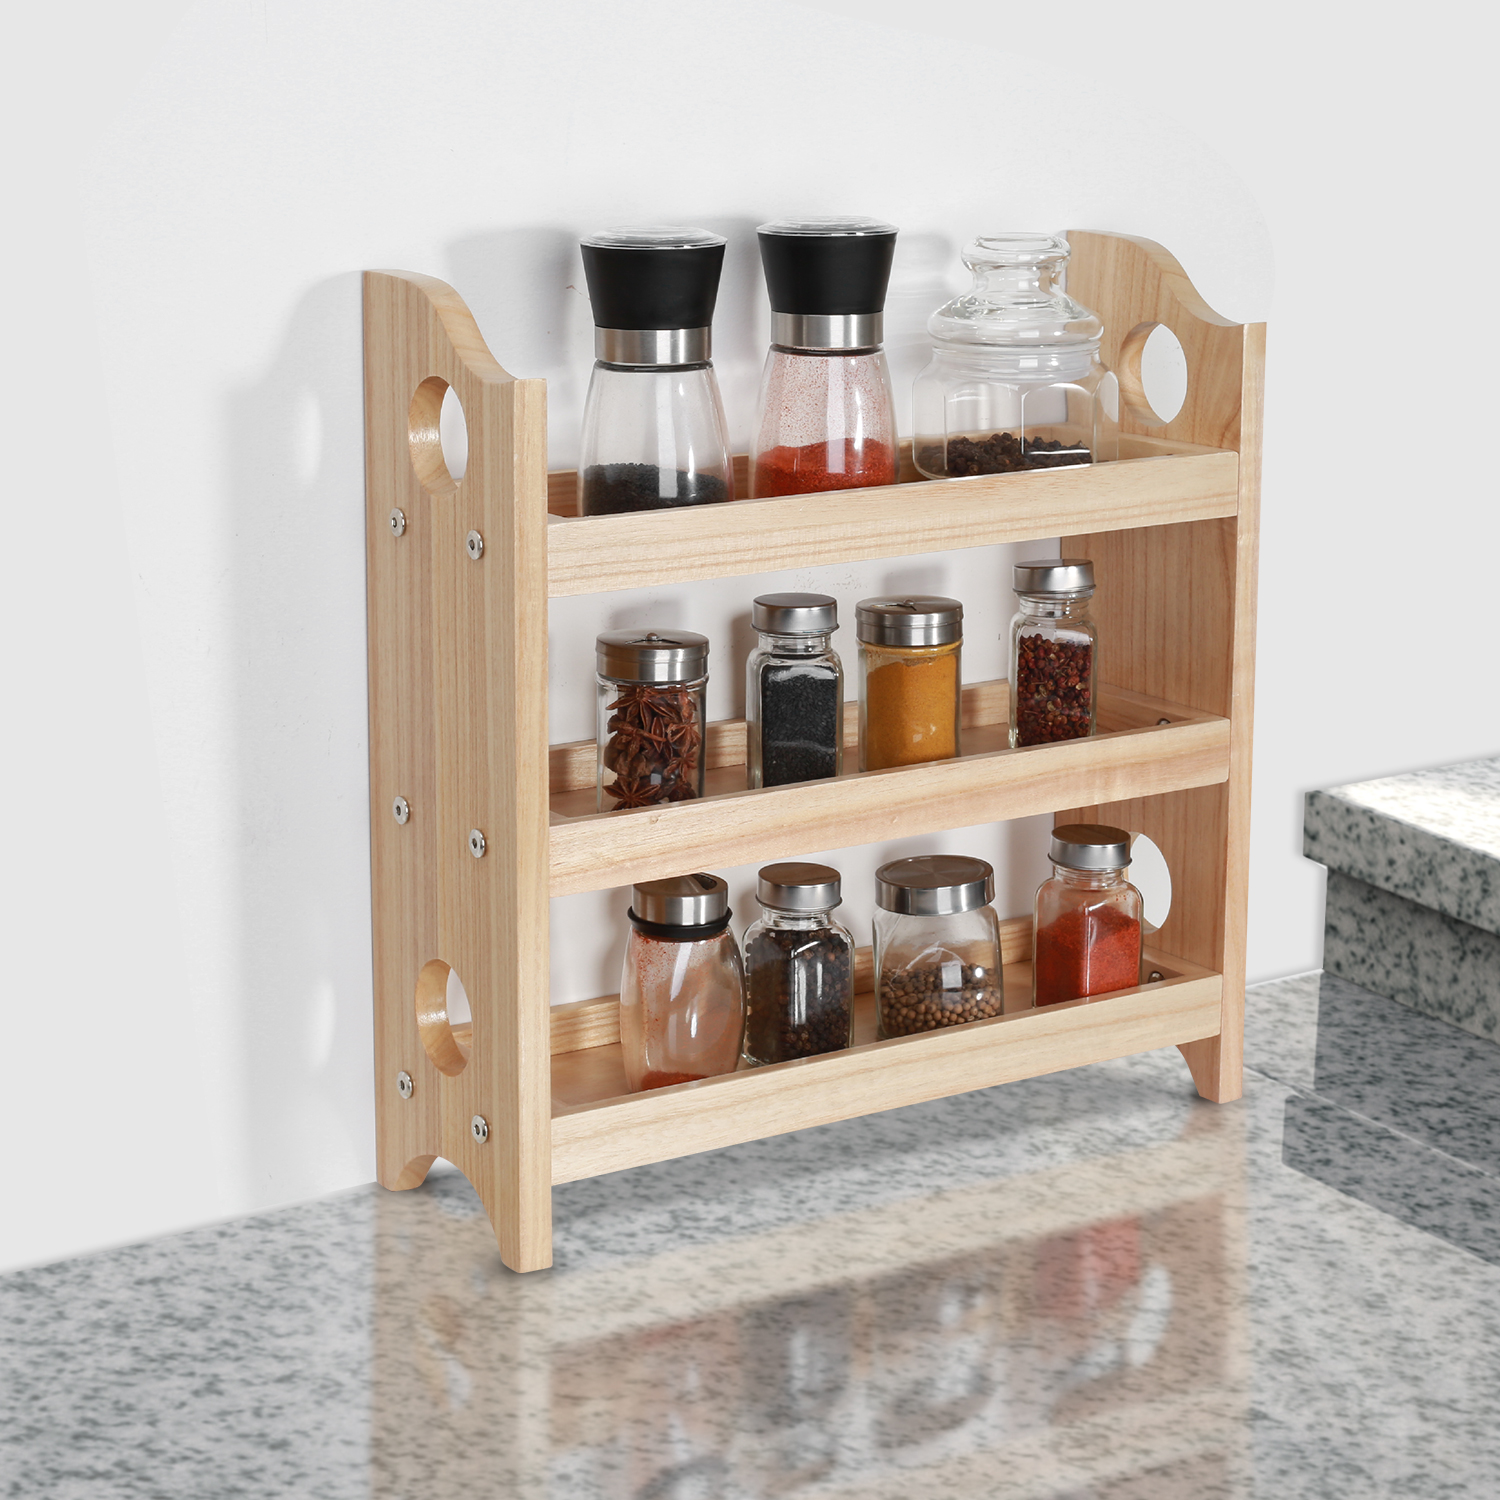 Details about 3-Tier Wooden Spice Rack Wall-Mount Holder Bathroom Kitchen  Dining Countertop